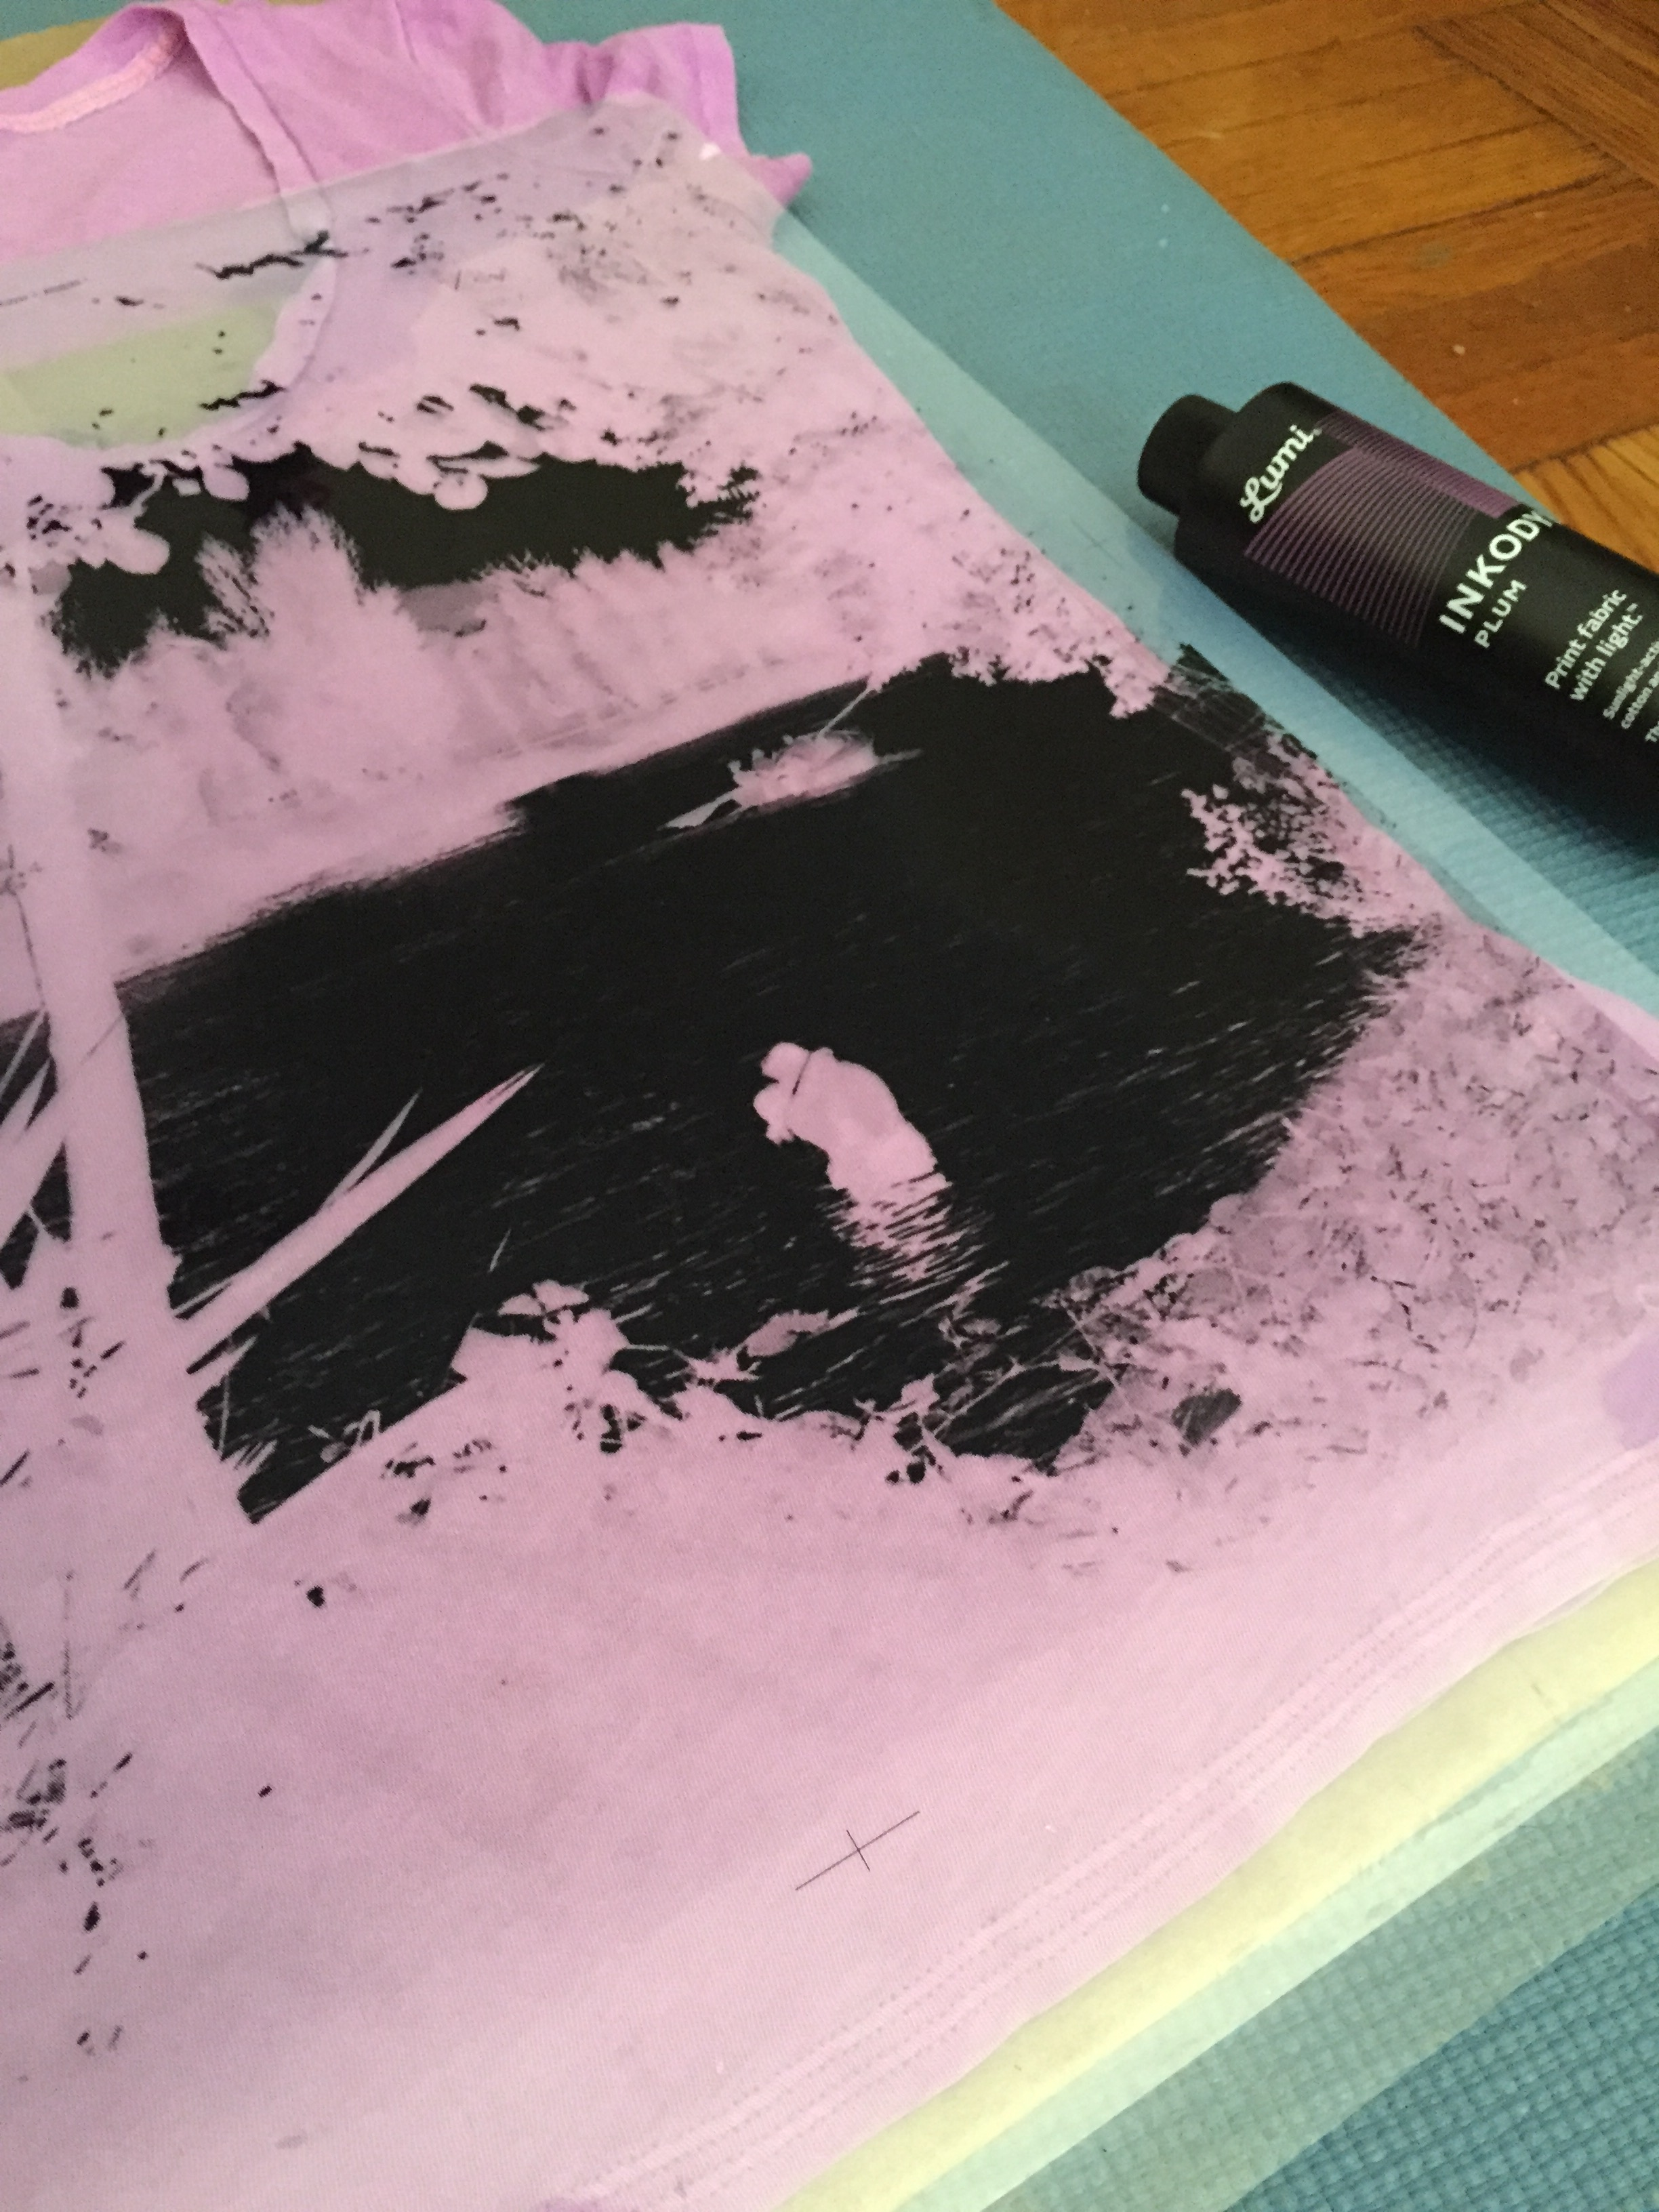 Order supplies and create big-ass negative from local screen printing shop, Gowanus Print Lab.